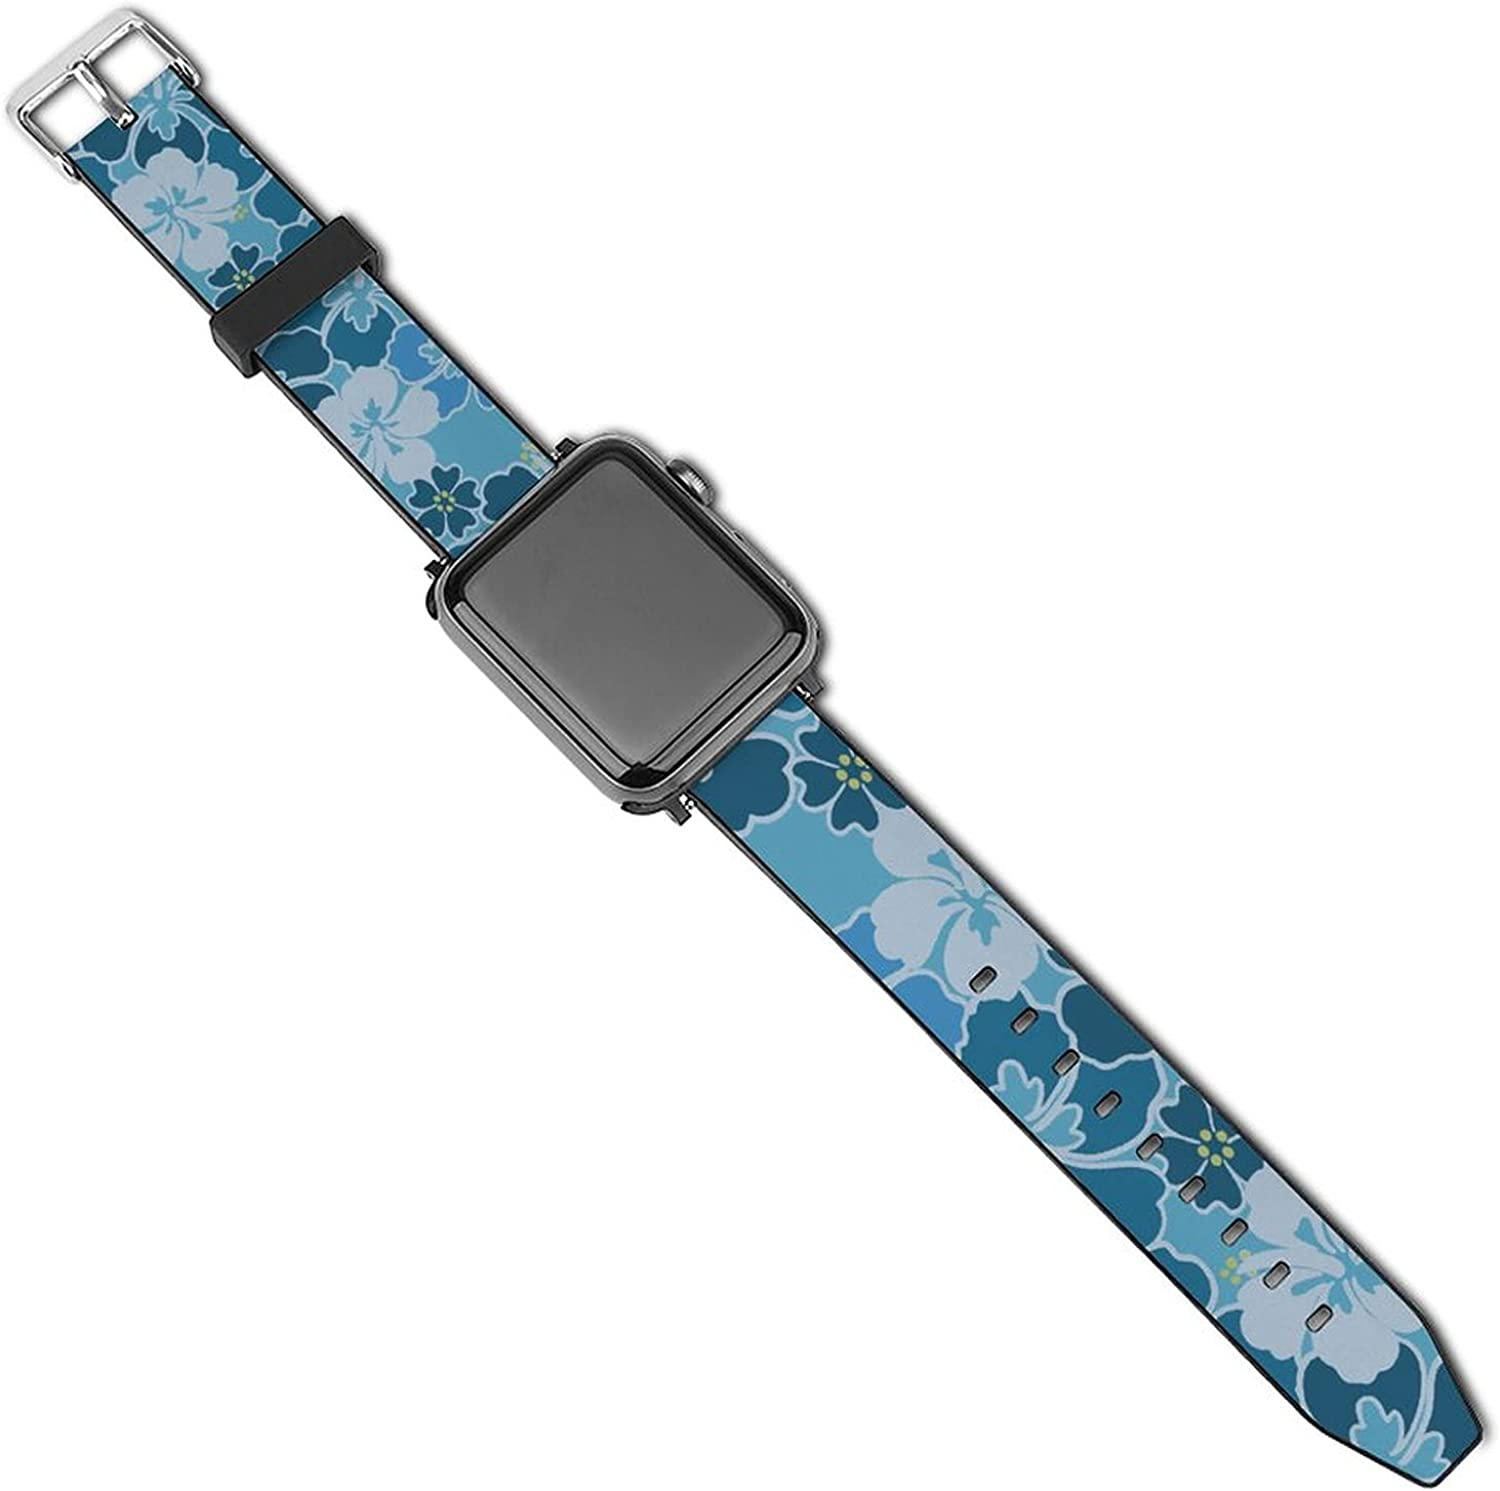 Replacement Bands Compatible with Apple Watch Bands 38mm 40mm 42mm 44mm for Women Men, Soft Bands Compatible with iWatch Series 5 4 3 2 1